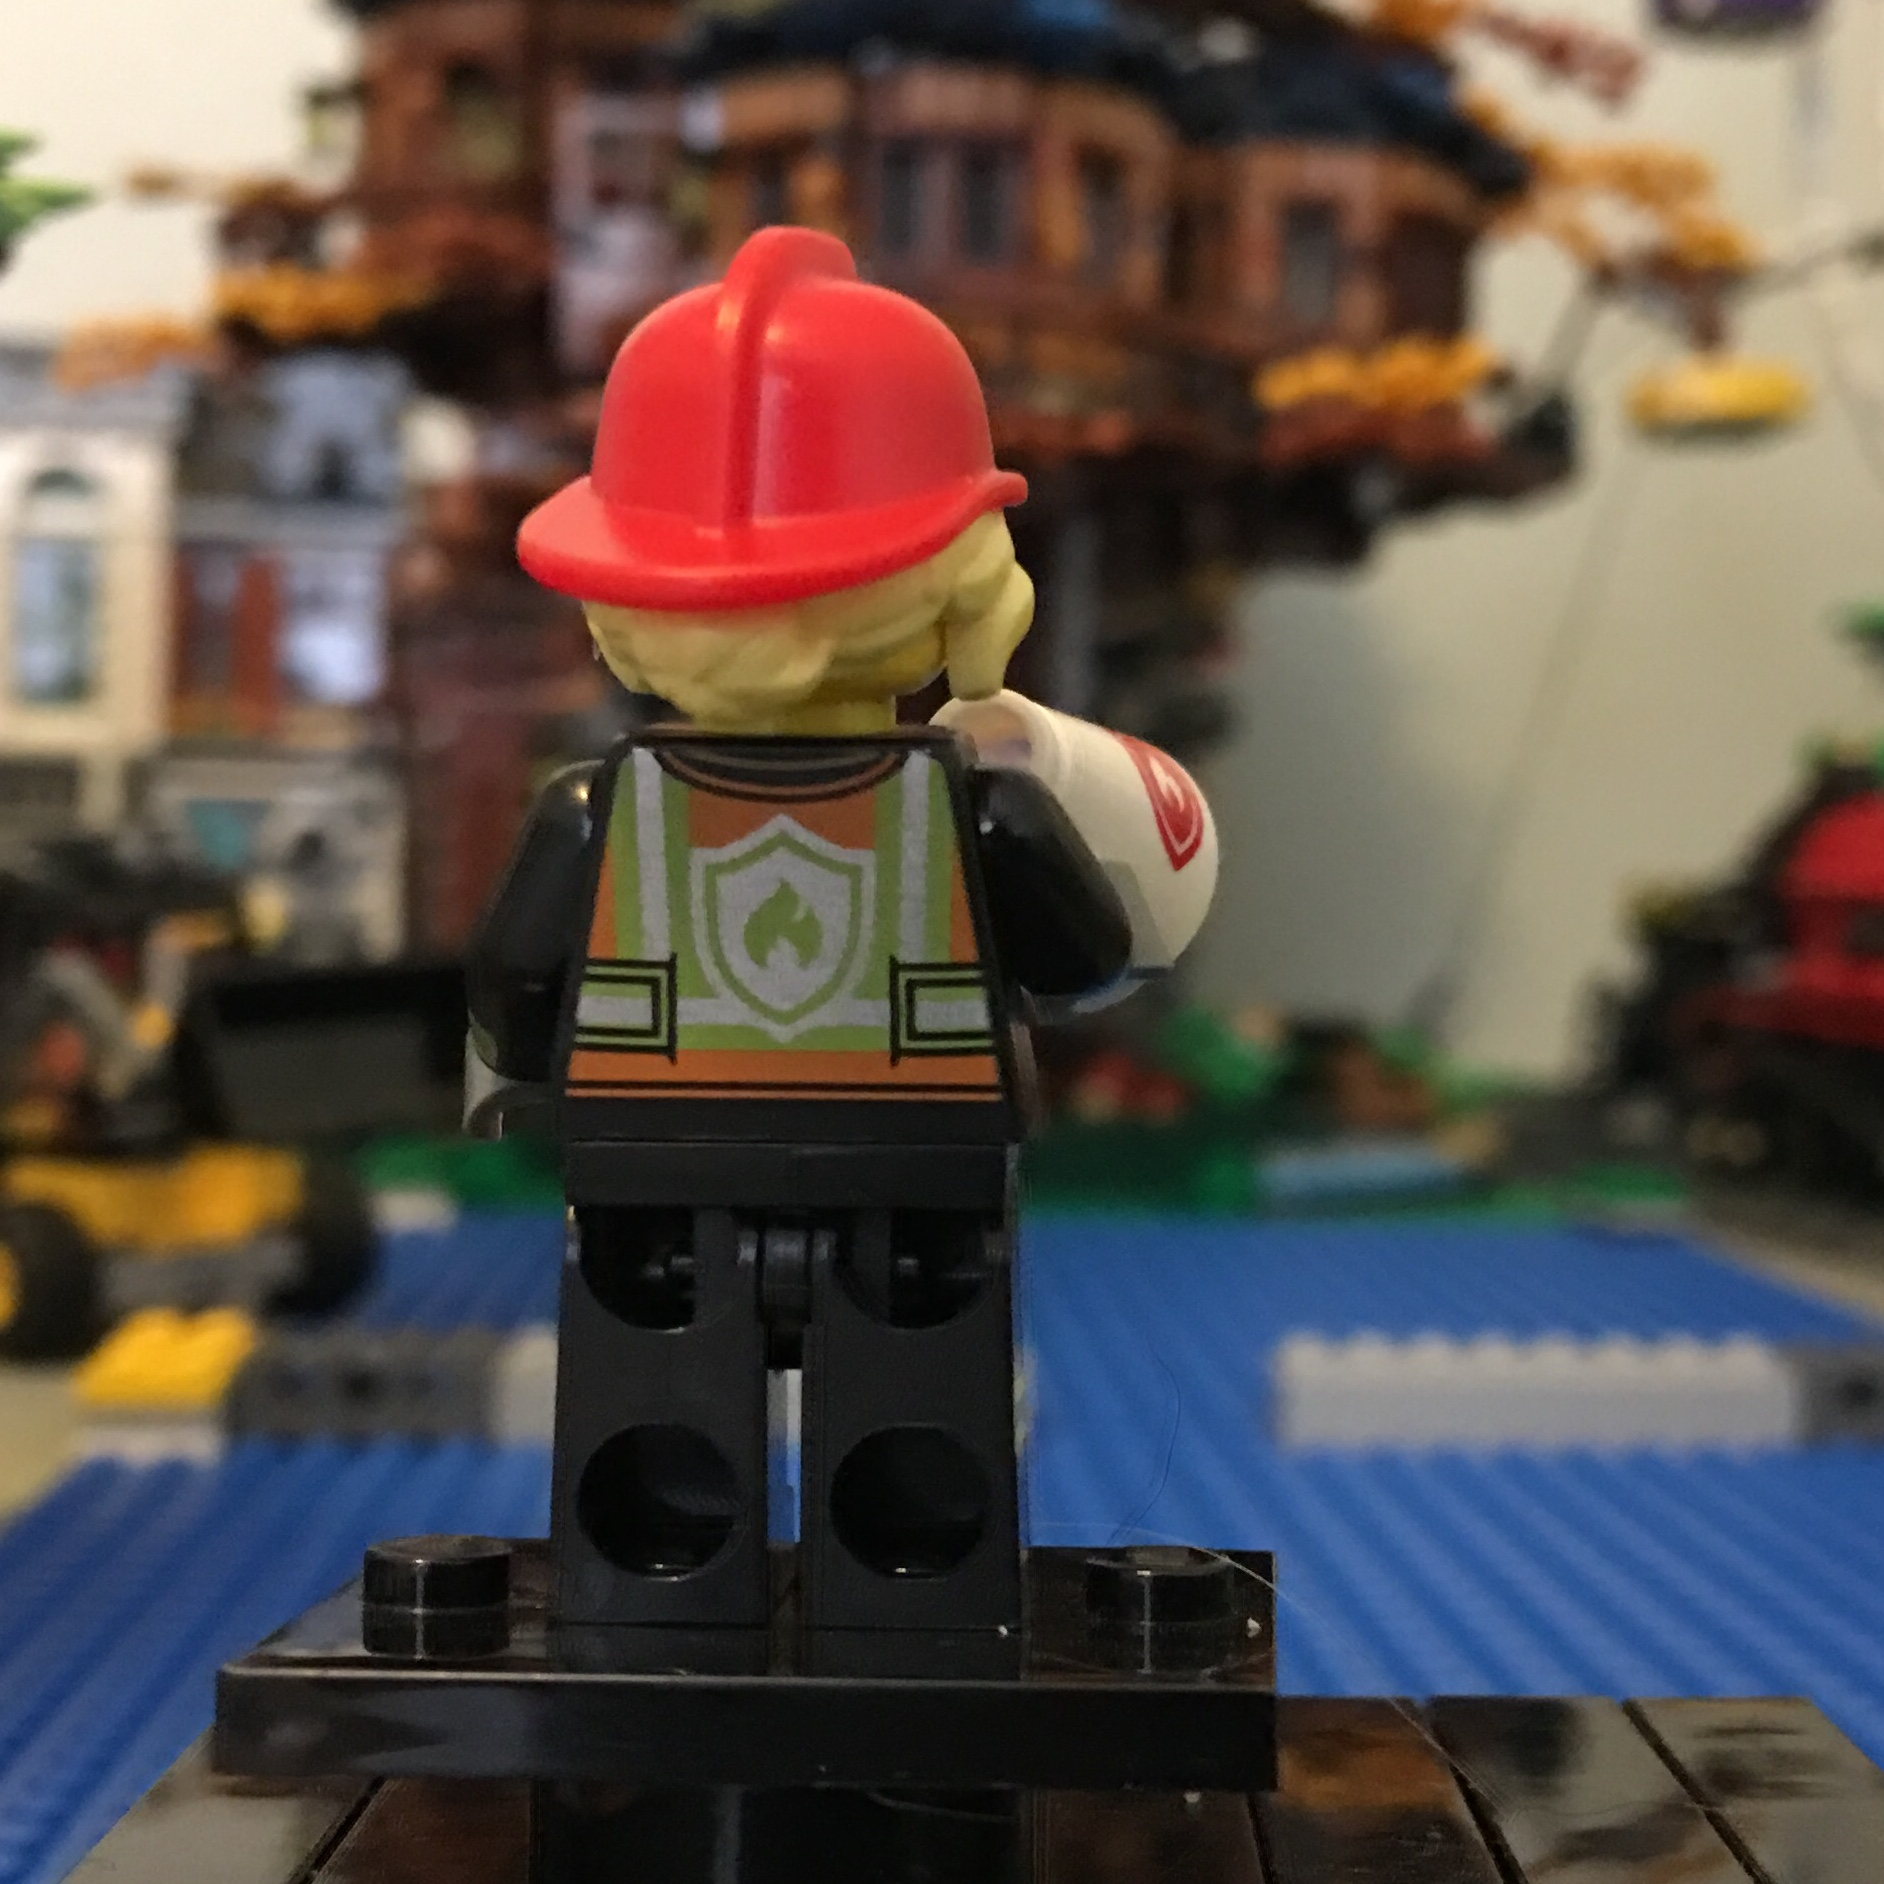 Firefighter NEW LEGO MINIFIGURES SERIES 19 71025